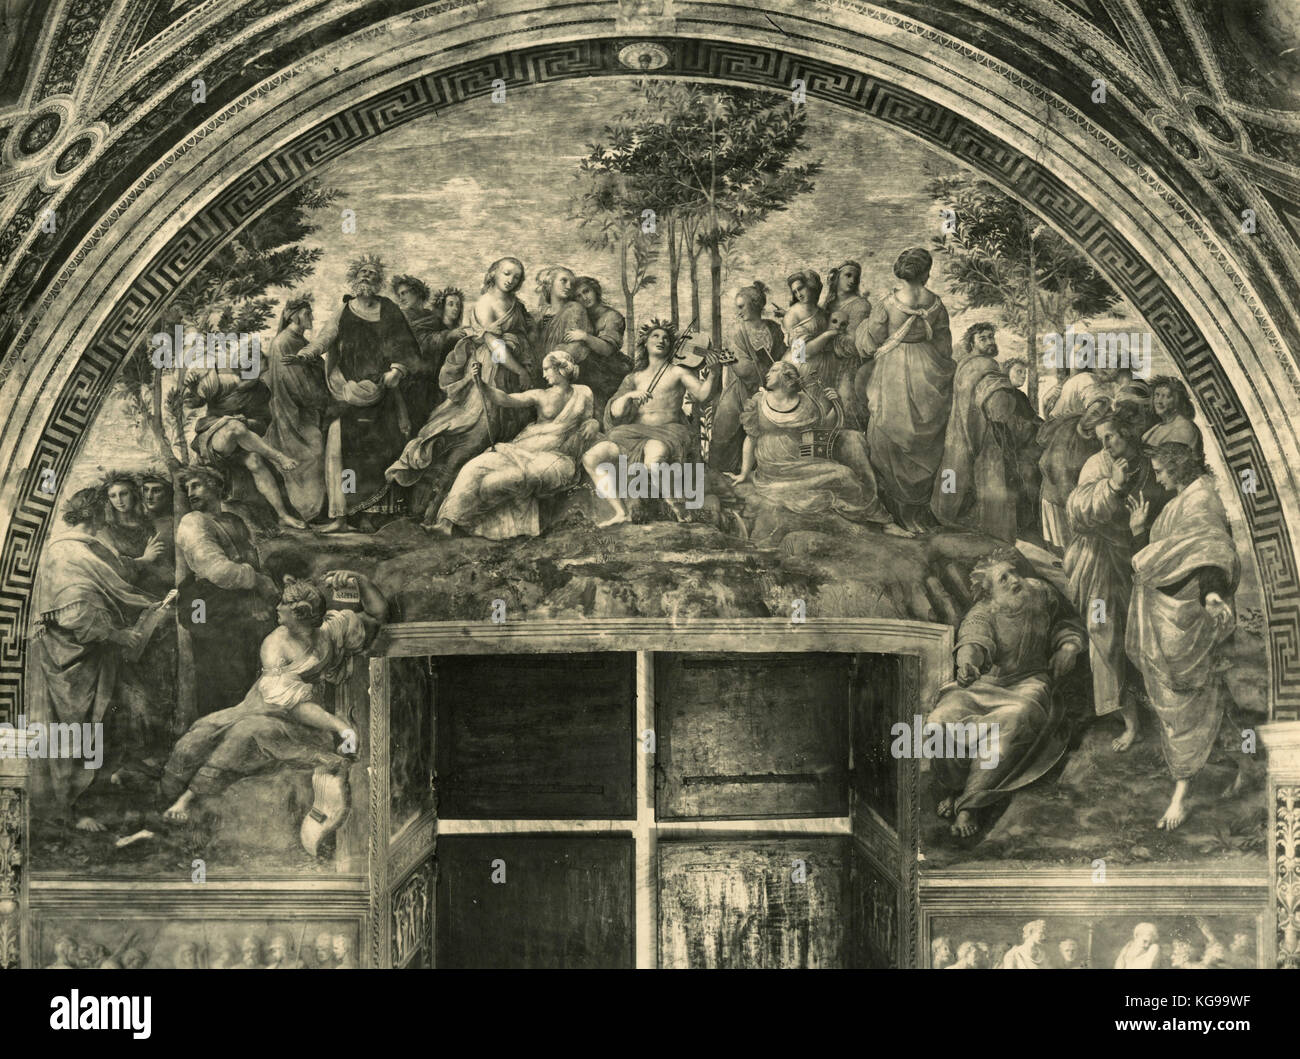 Parnassus, Rapheal's Rooms, Vatican City - Stock Image